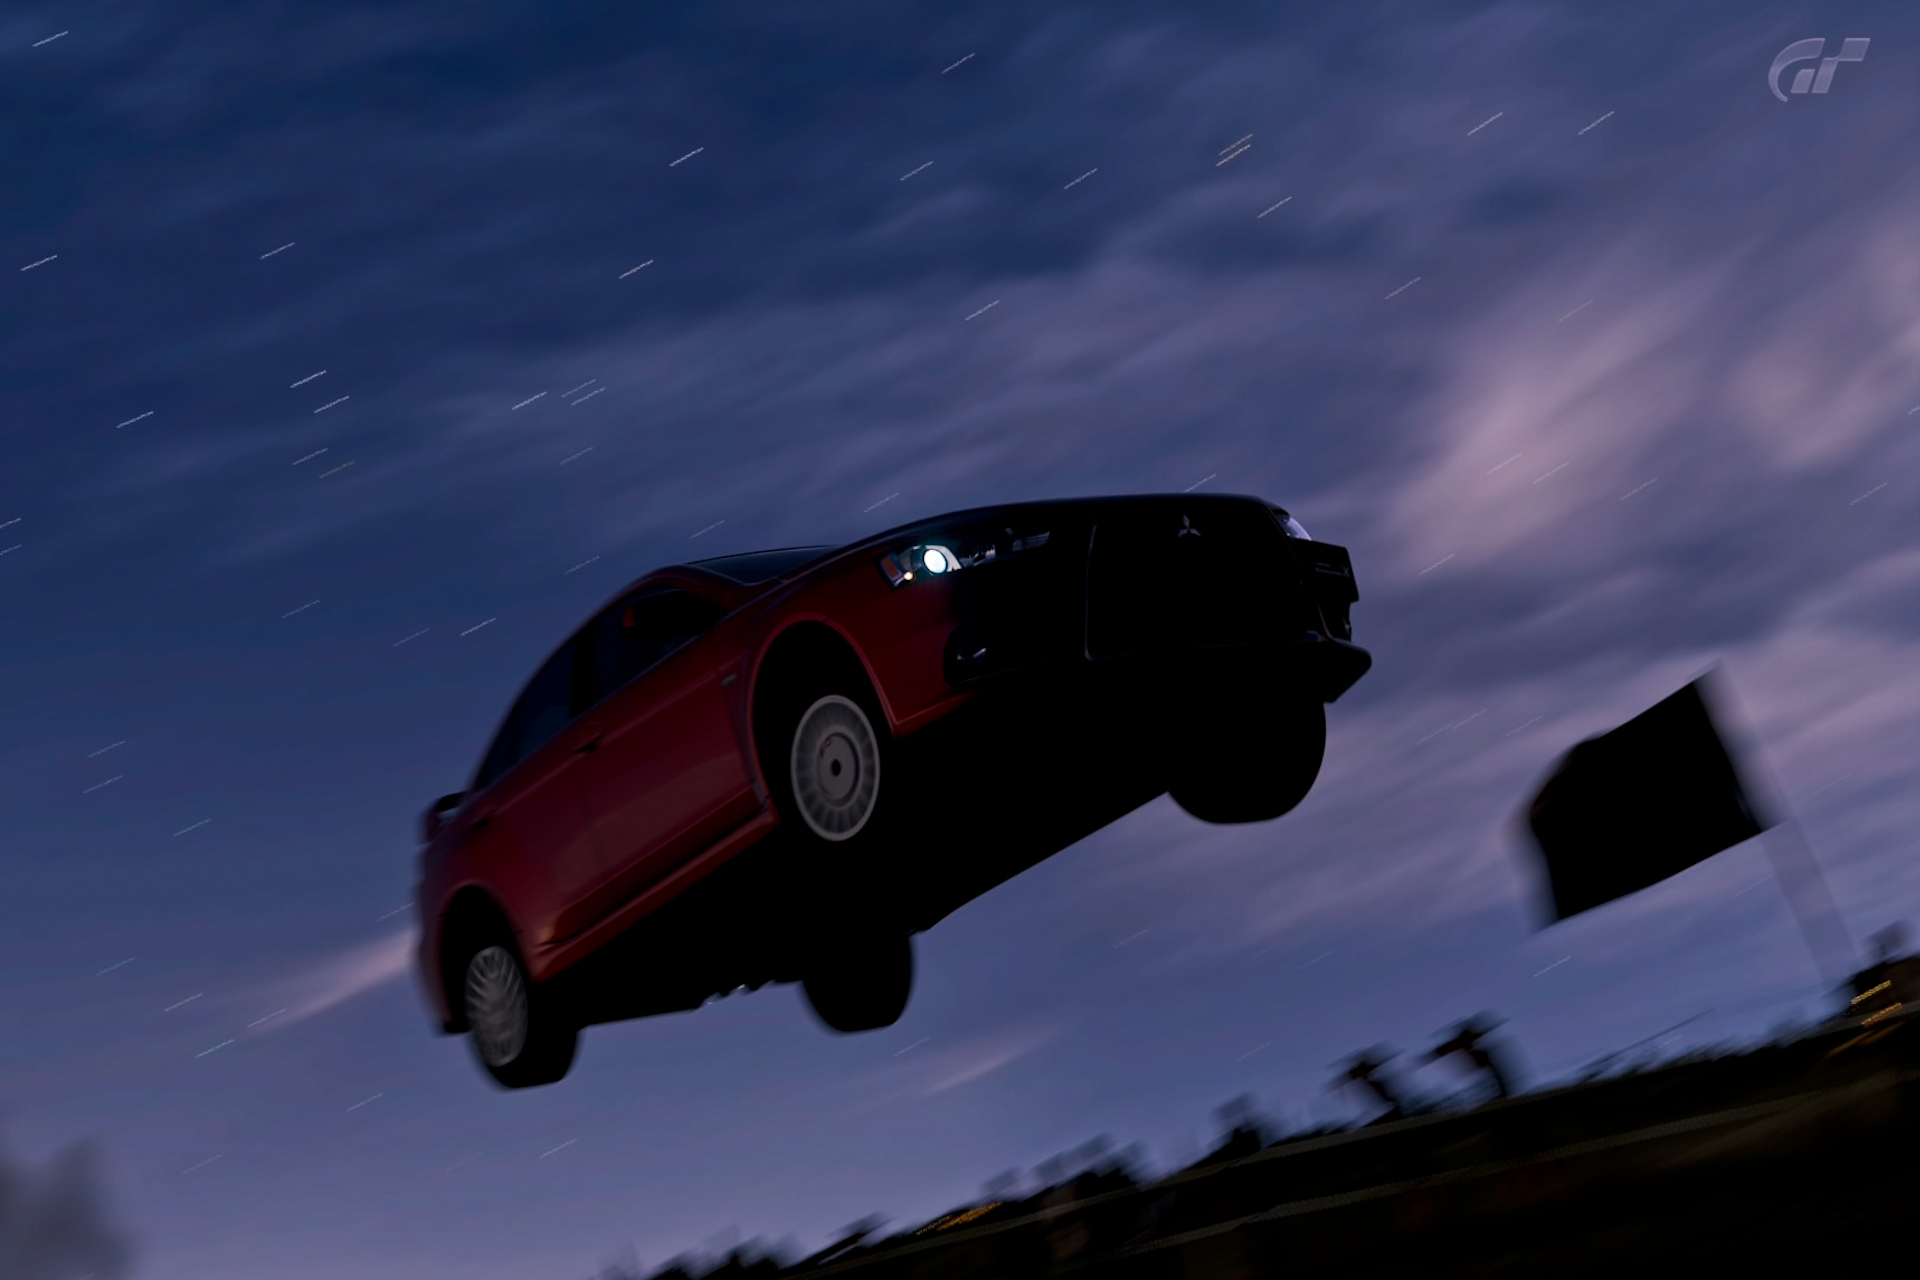 gran turismo 5 photomode by dream vii-d4